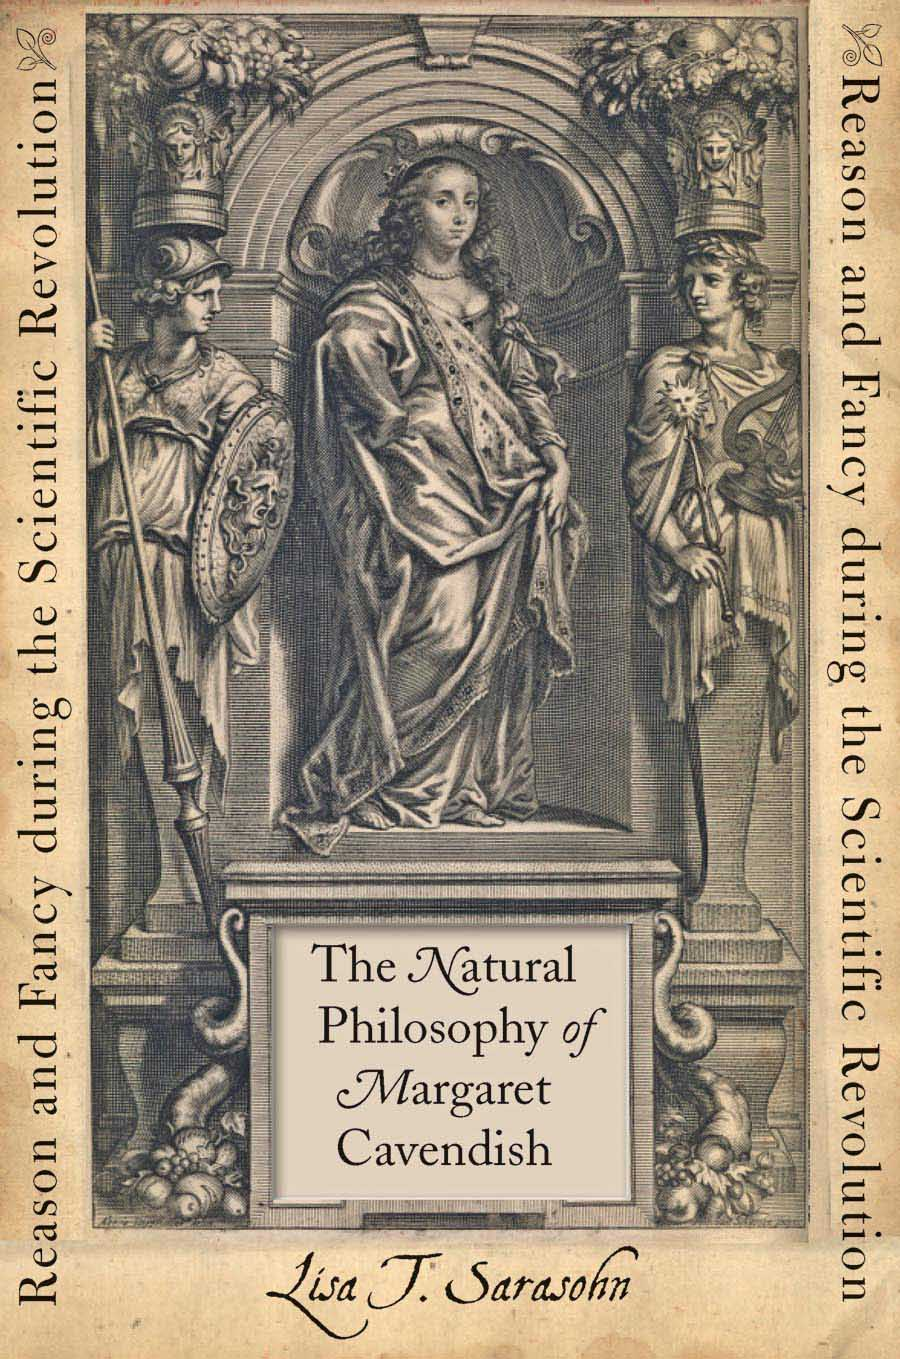 The Natural Philosophy of Margaret Cavendish – Reason and Fancy during the Scientific Revolution